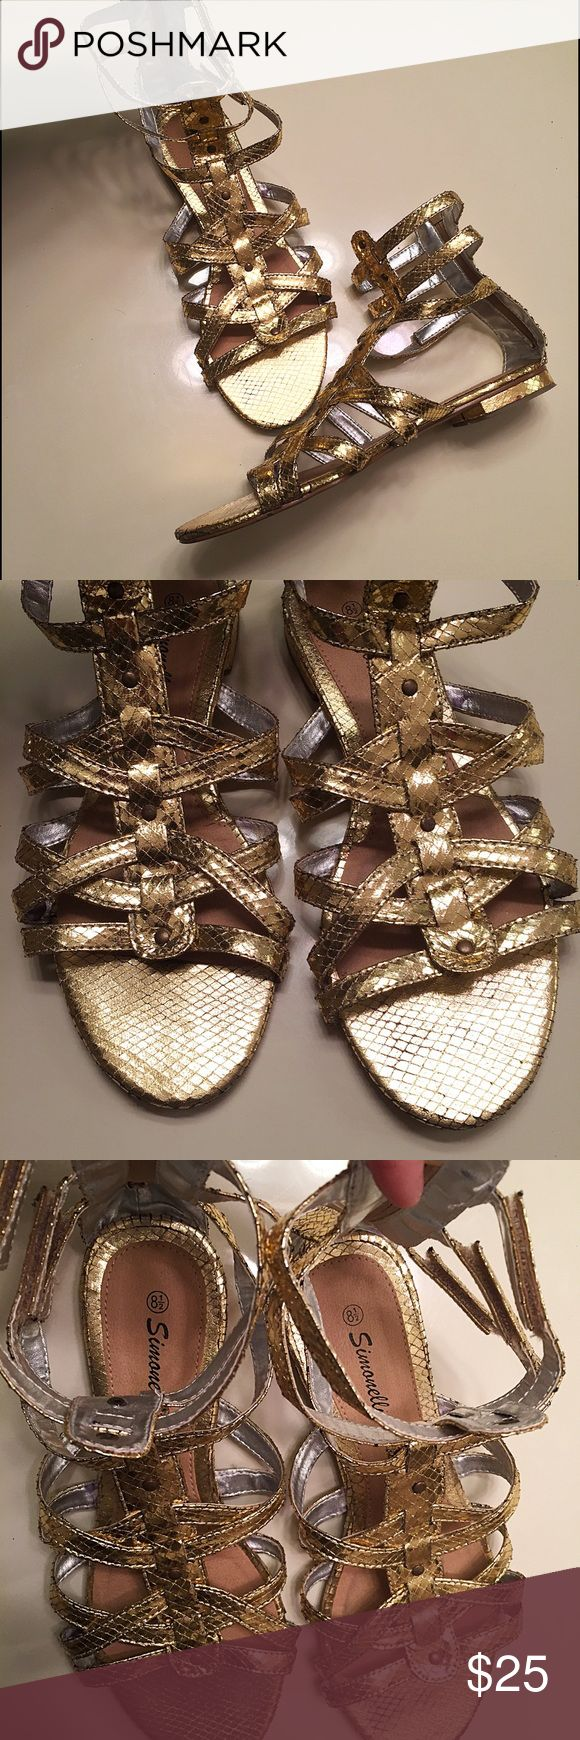 Shiny gold gladiator sandals snakeskin zip up Shiny snakeskin gold gladiator sandals women's size 8.5 by Simonelli. Have been worn a few times but are in good condition. Adorable style but too big for me. Zippers in the back for convenience Shoes Sandals